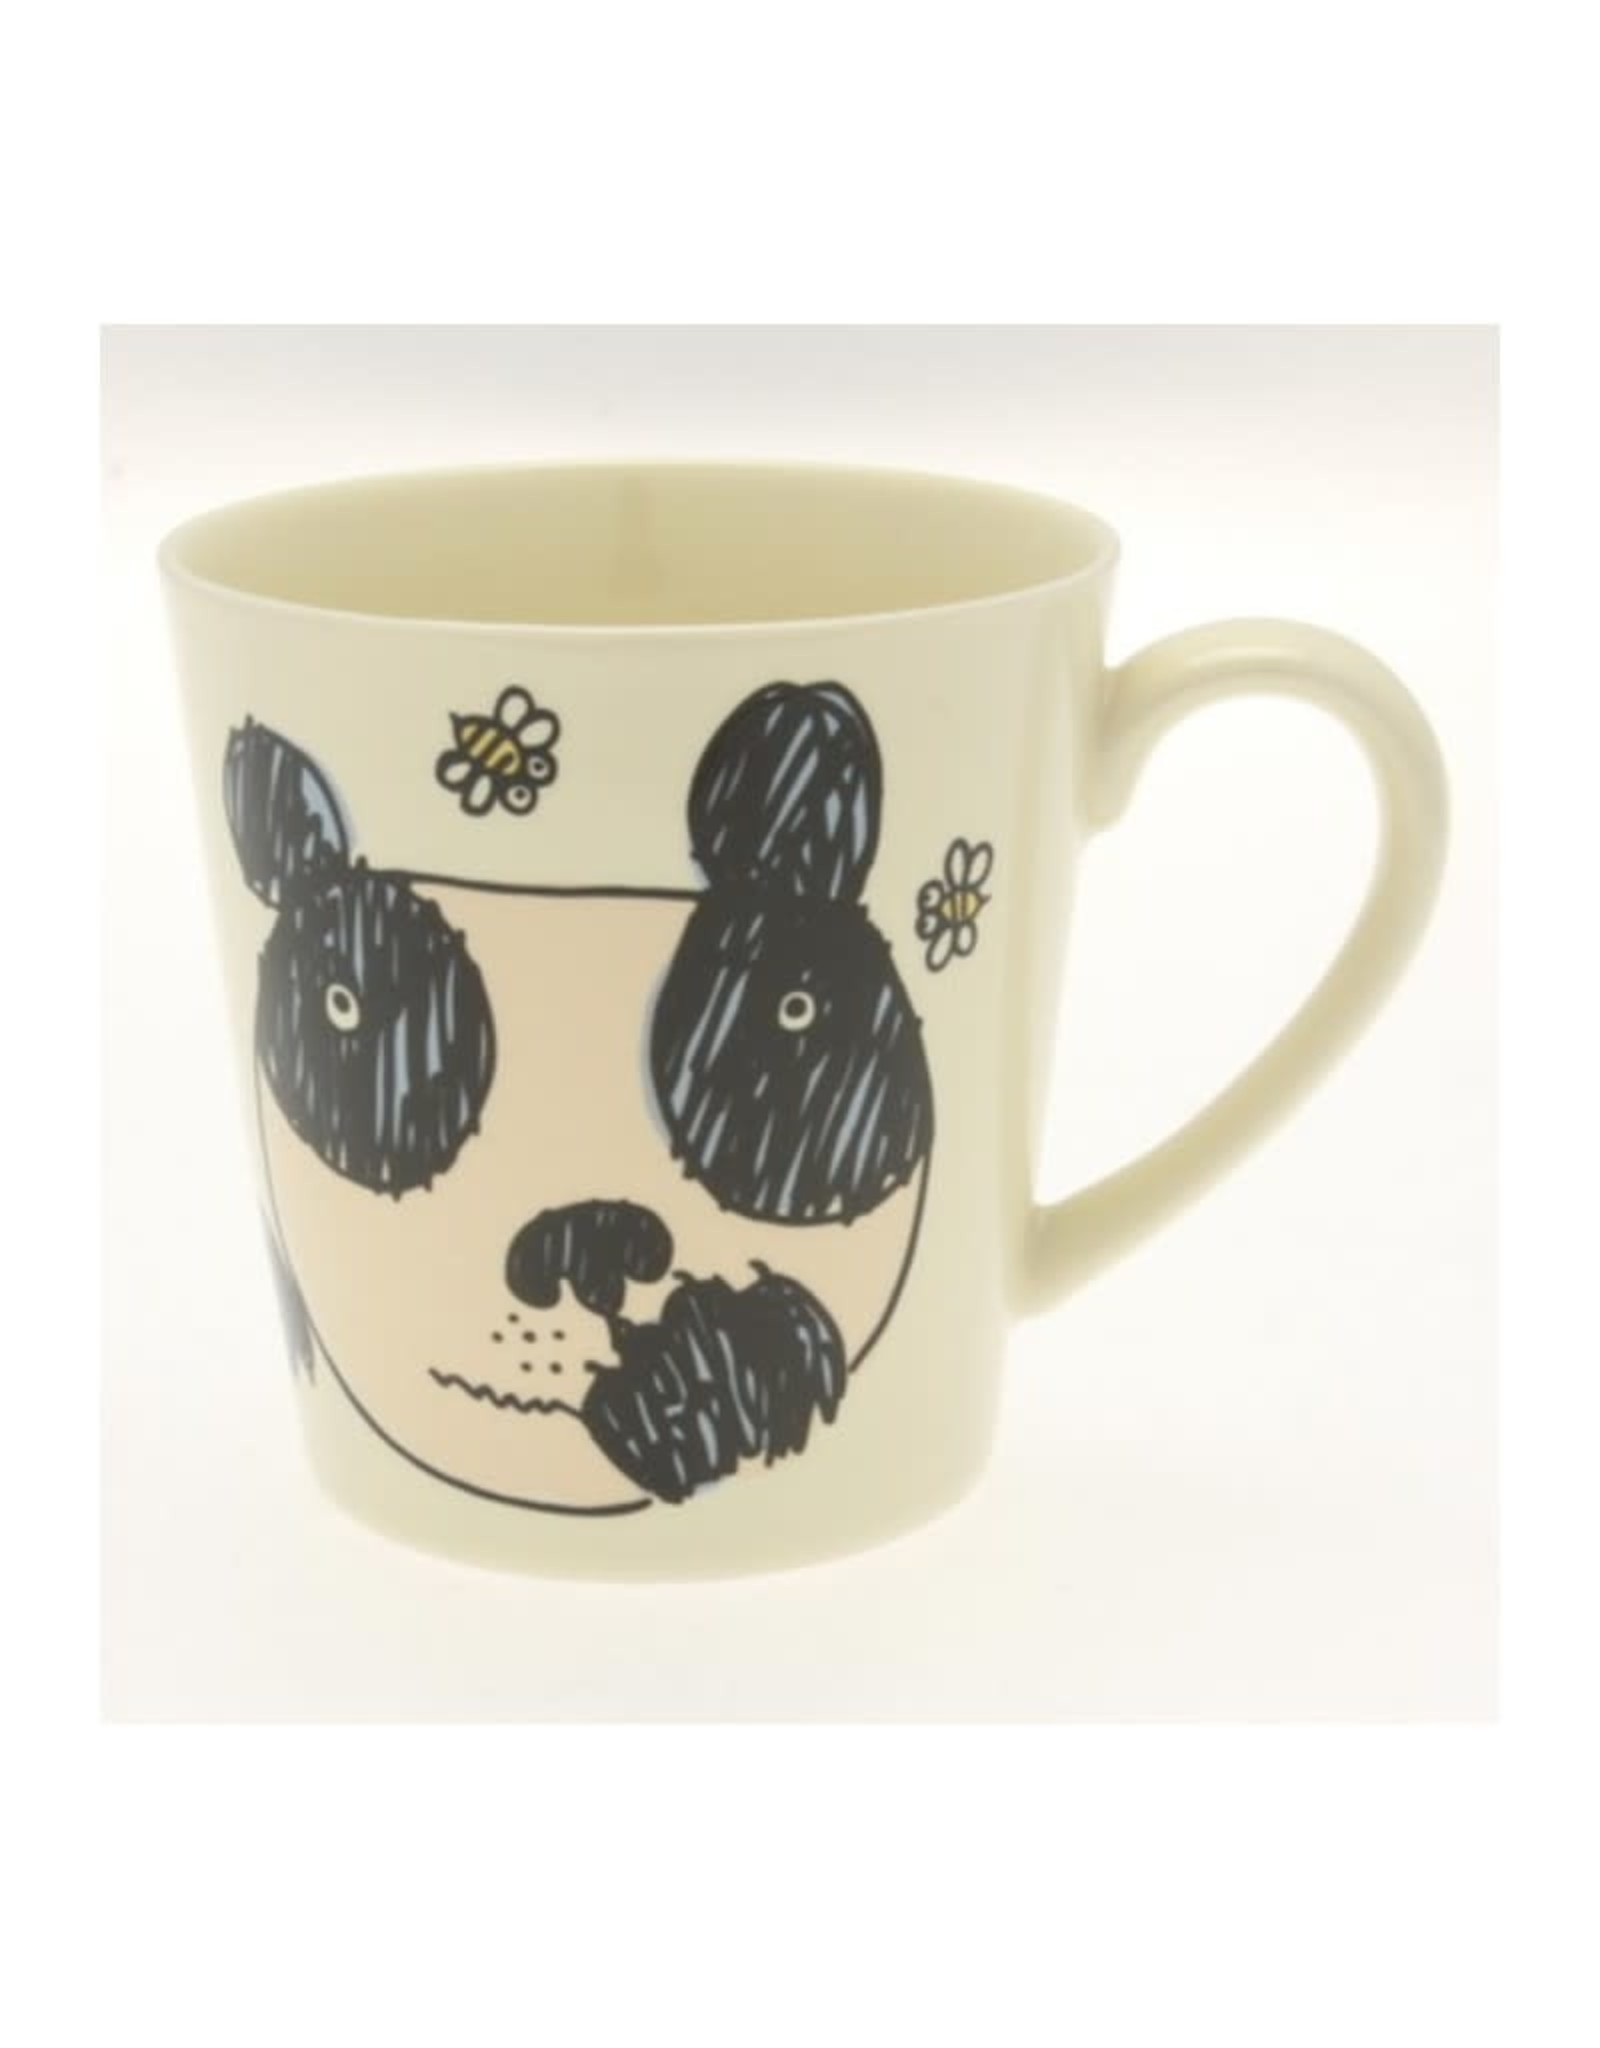 Kotobuki Trading Co. Inc Mug Crazy Panda